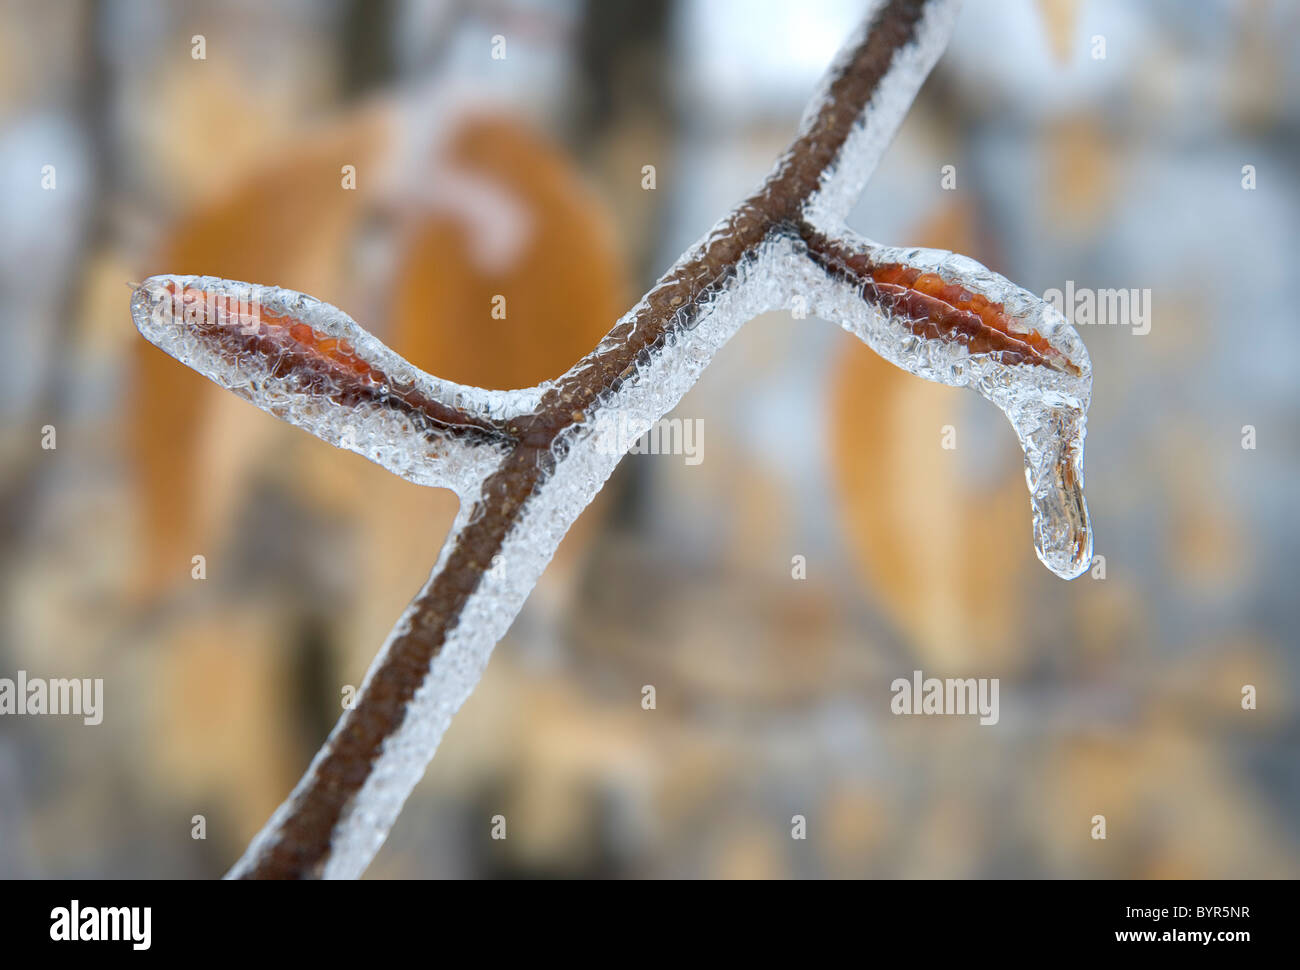 A beech tree twig and leaf buds covered in ice after an ice storm in winter Stock Photo